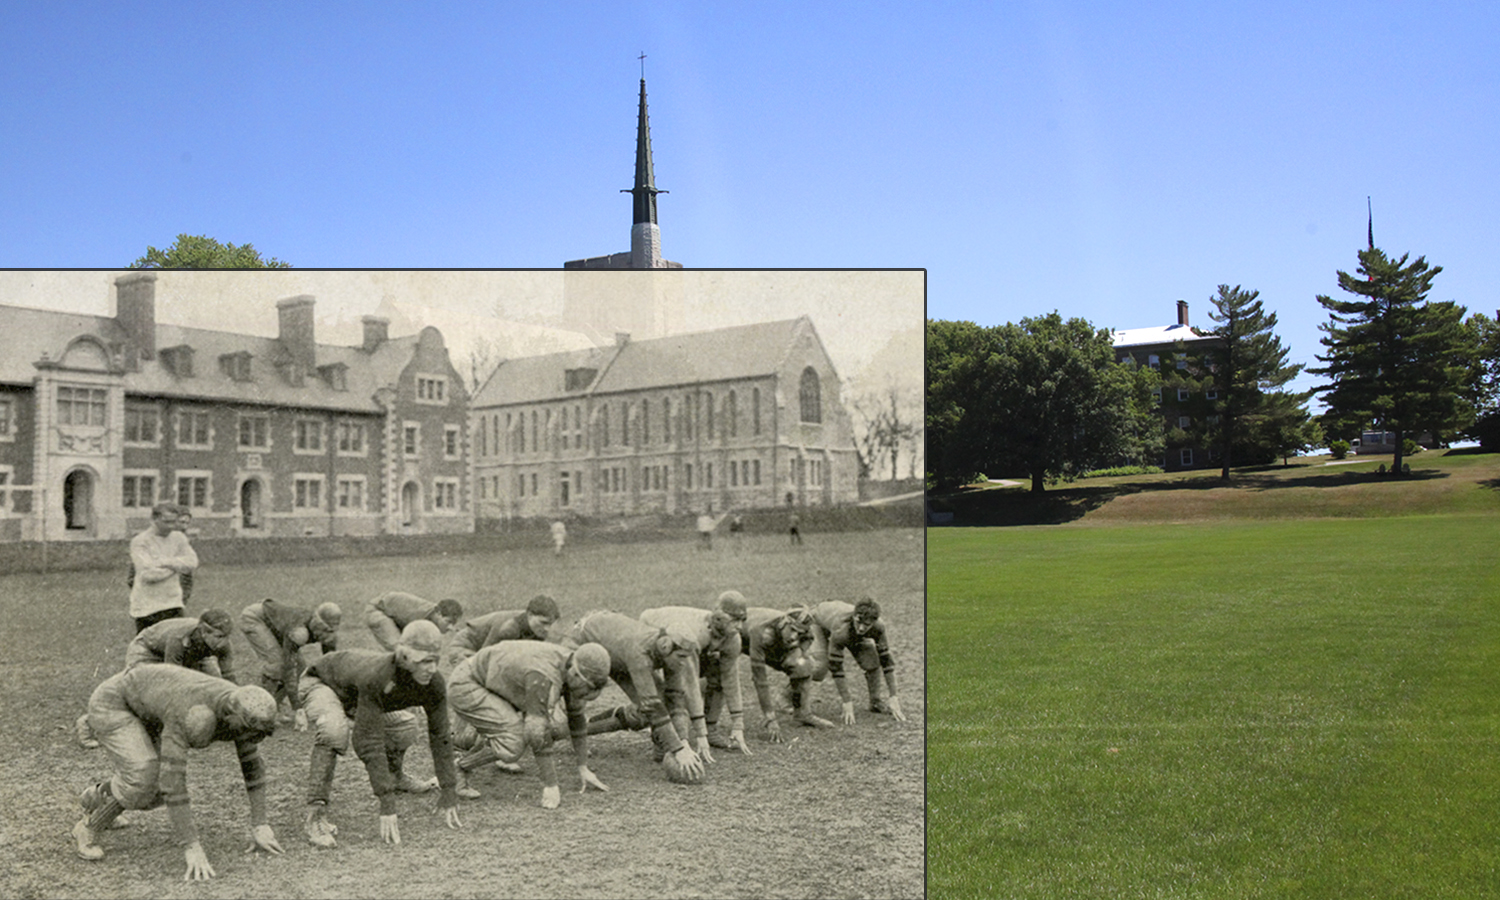 The Hobart football practiced on Quad in 1906. The team's current home, Boswell Field was built in 1974.